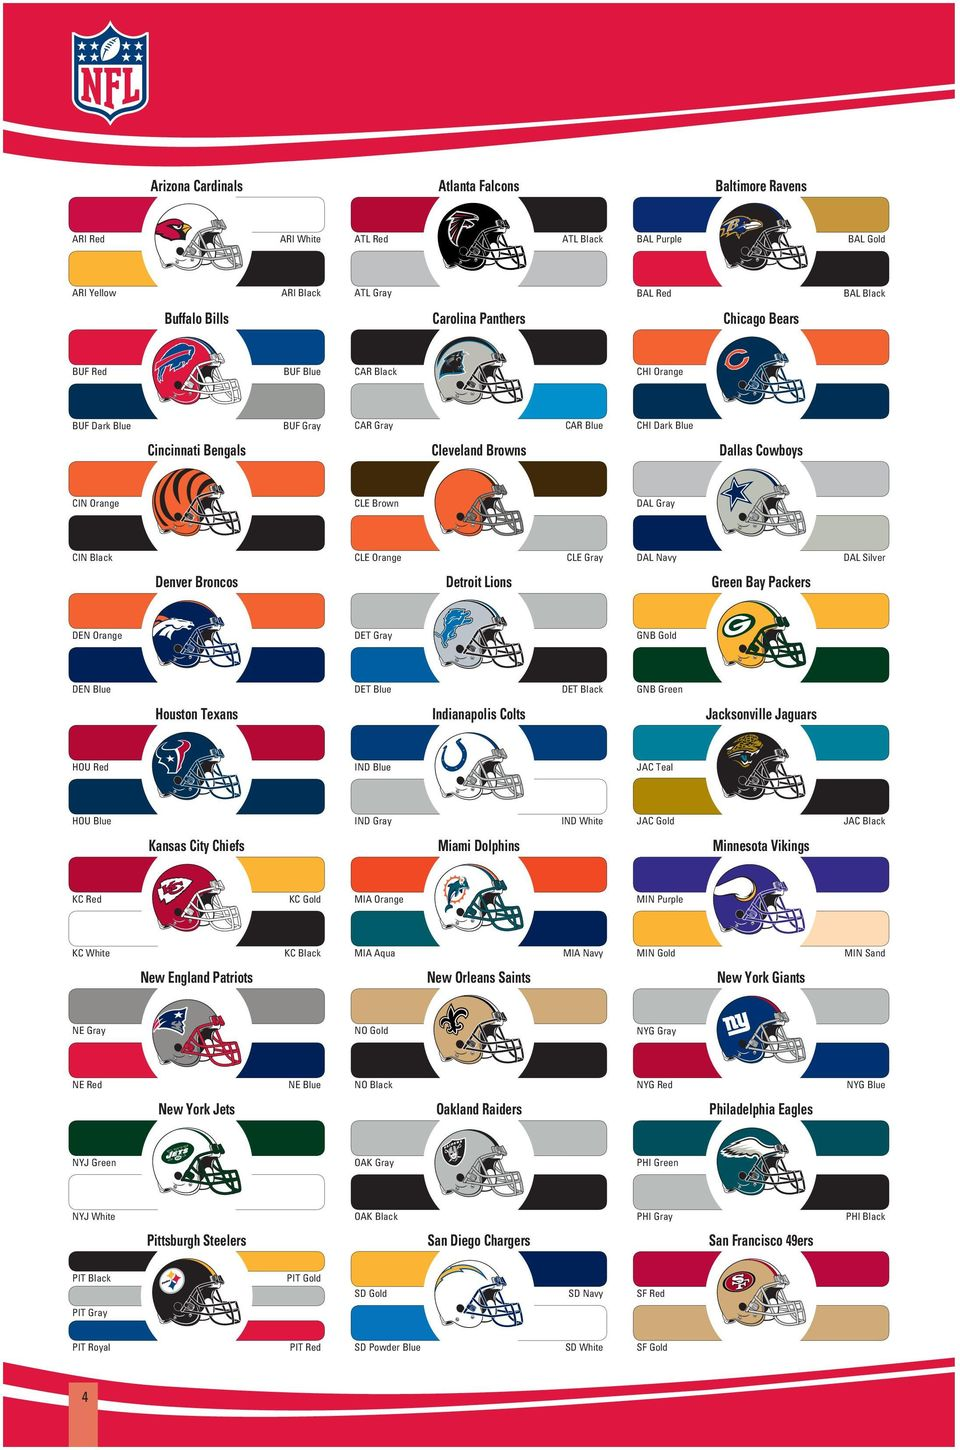 DET Black GNB Green Jacksonville Jaguars JAC Teal IND White JAC Gold MIN Purple MIA Aqua MIA Navy MIN Gold New Orleans Saints NE Gray NE Blue NYG Gray NO Black NYG Red Oakland Raiders OAK Gray PHI